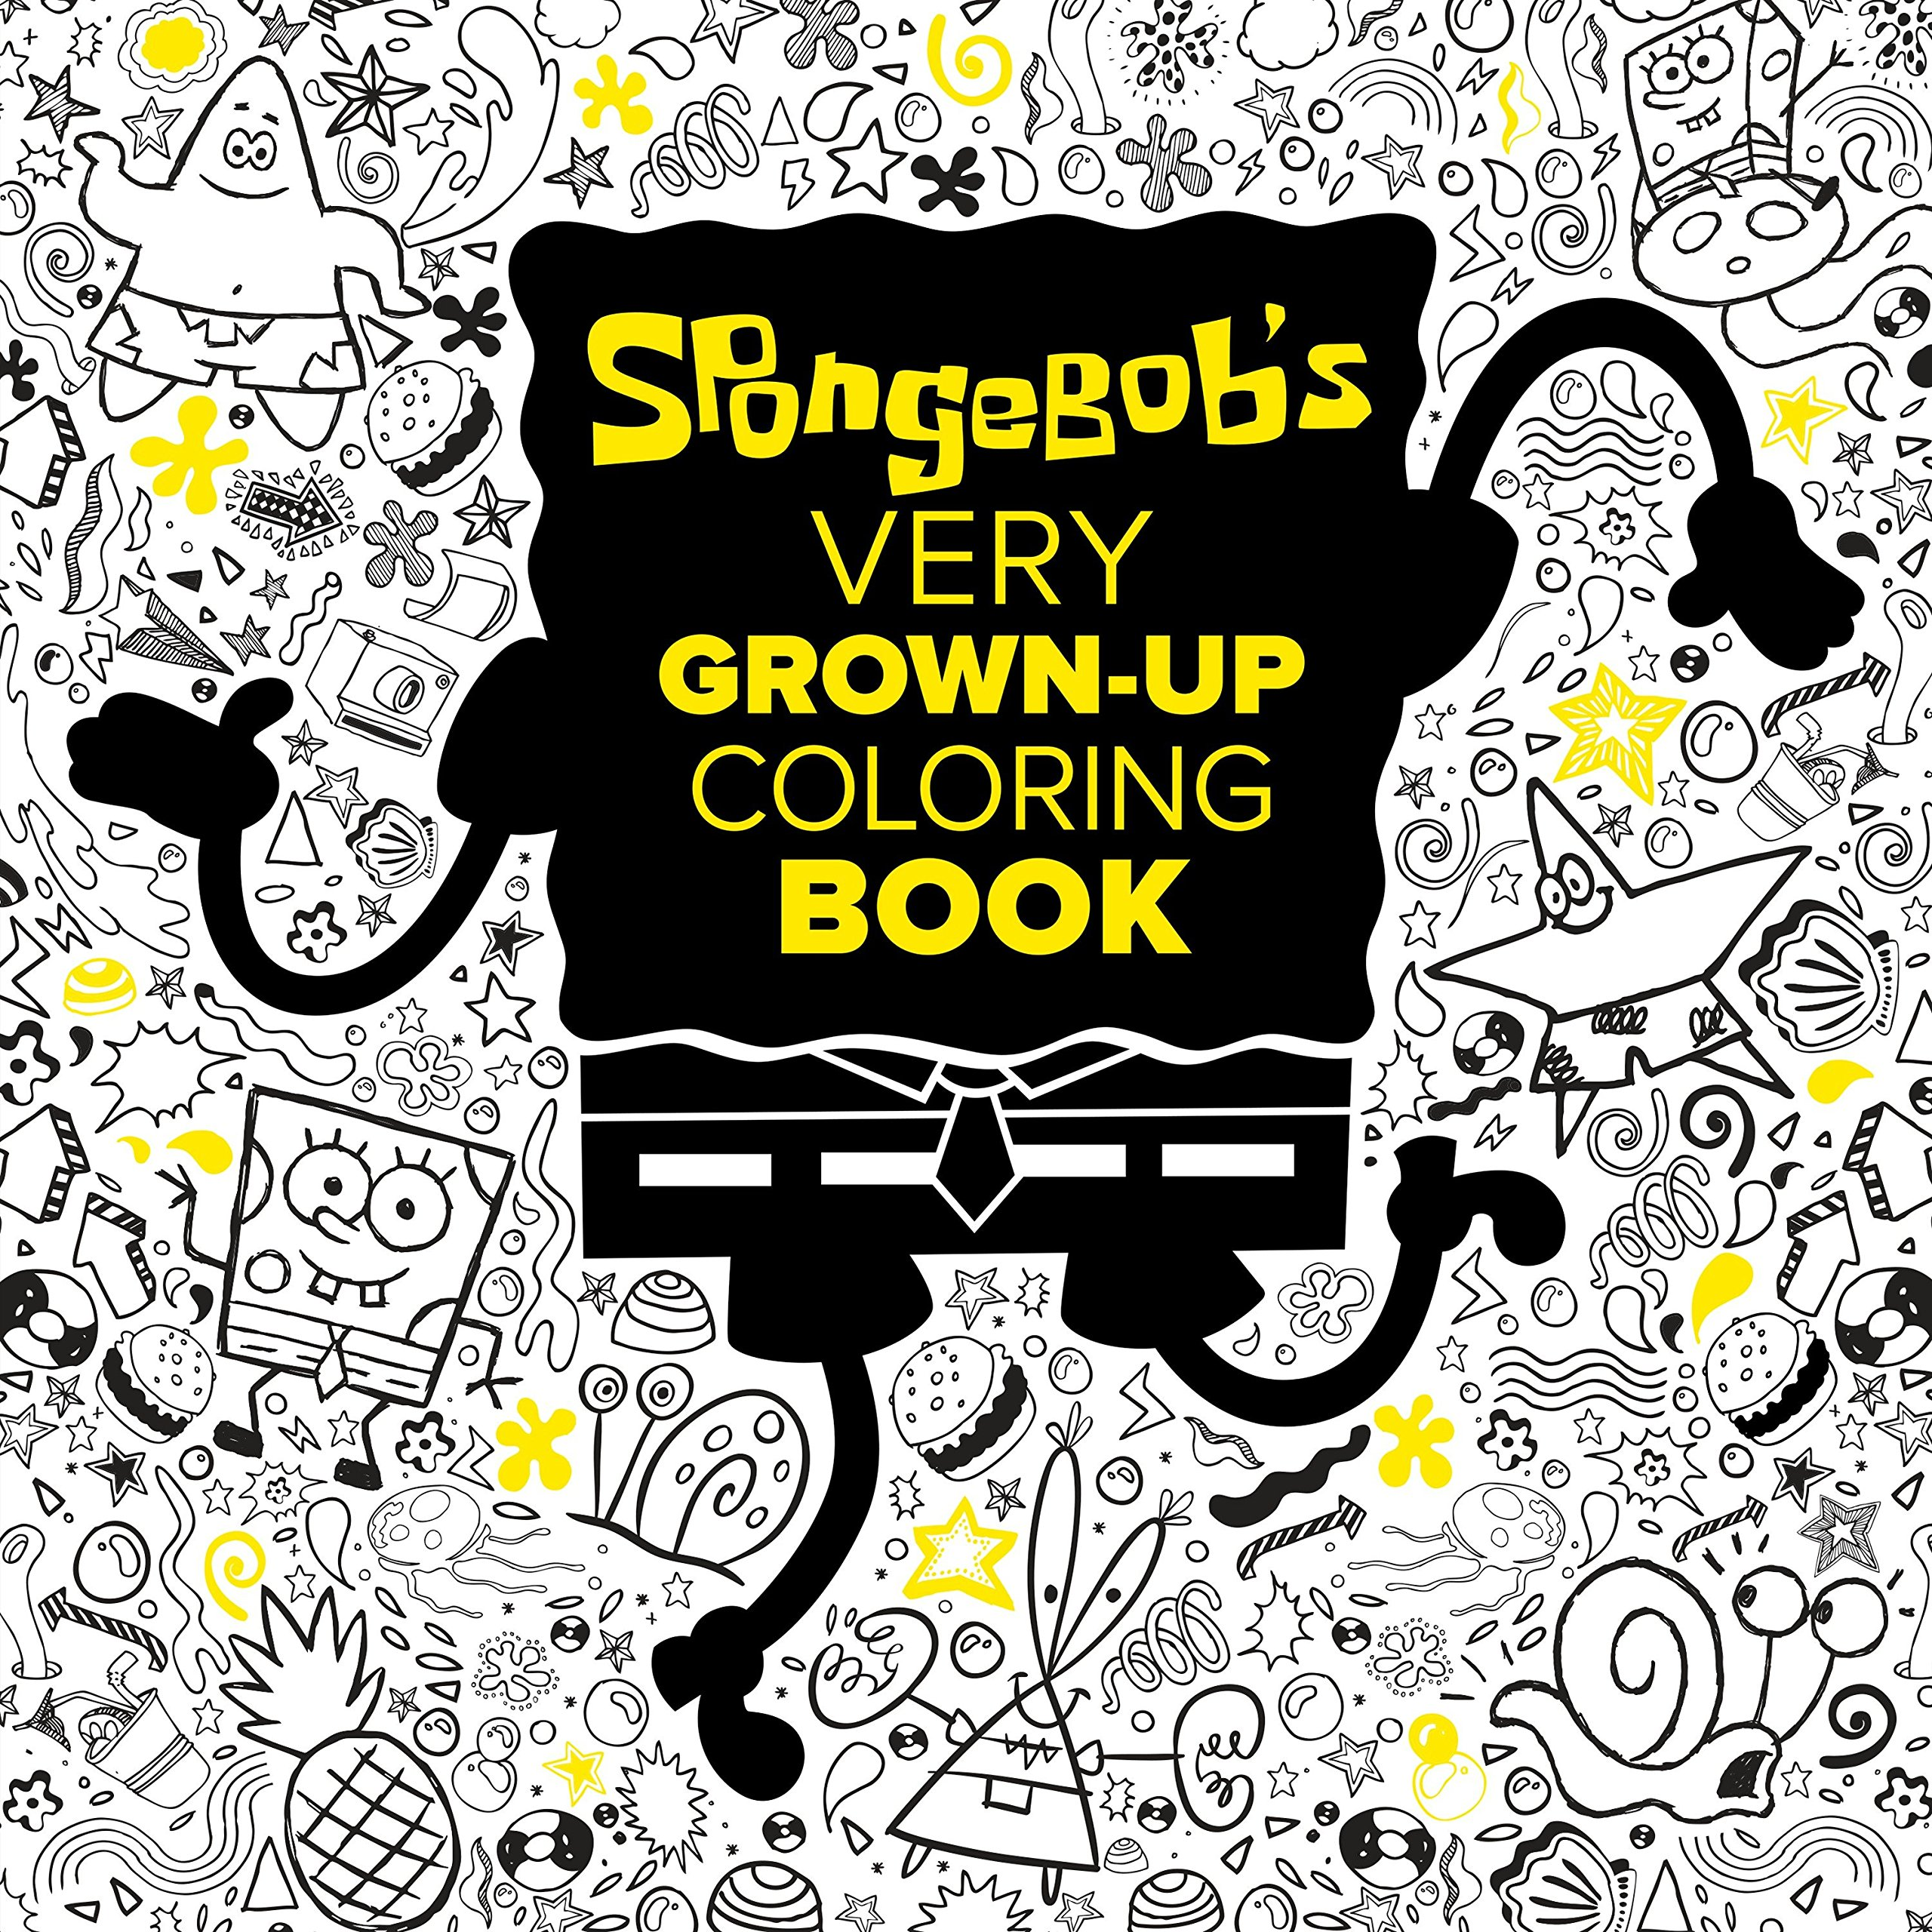 SpongeBob's Very Grown-Up Coloring Book (SpongeBob SquarePants) (Adult Coloring Book)